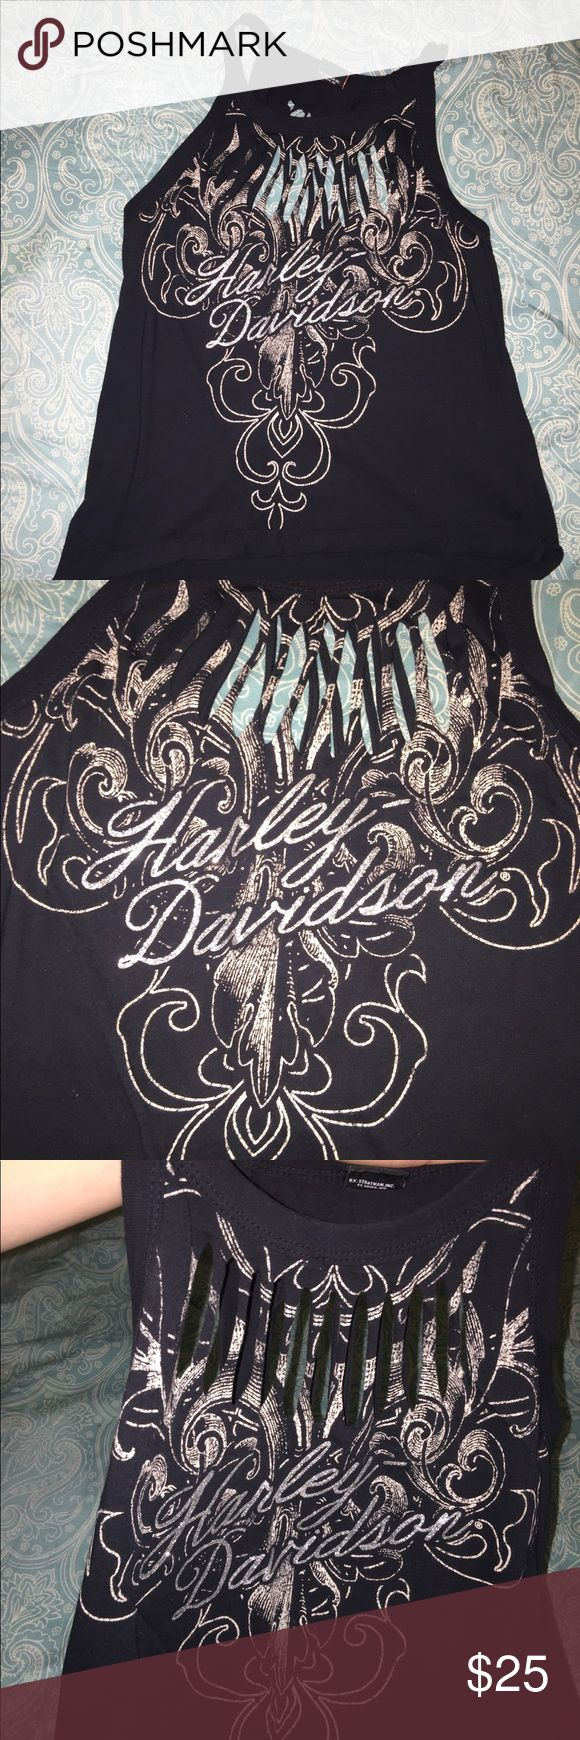 Harley Davidson women's ripped Sexy Top XS Sexy YET super cute Women's Harley Davidson slashed / ripped tank top. Size XS. You definitely won't wanna miss this one! Harley-Davidson Tops